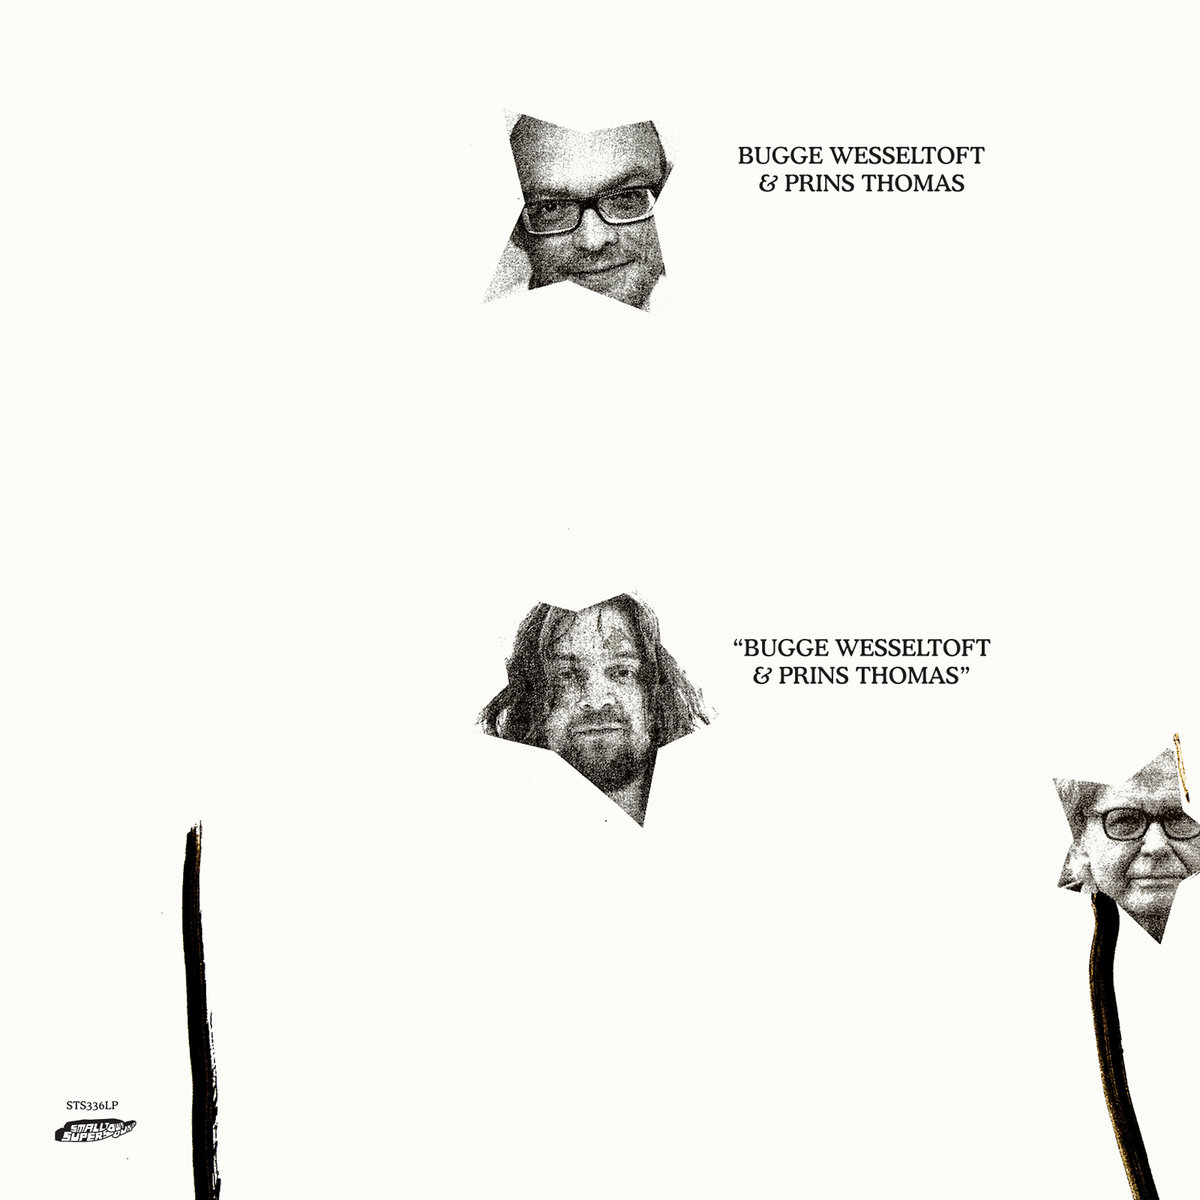 Album of the week: Bugge Wesseltoft and Prins Thomas